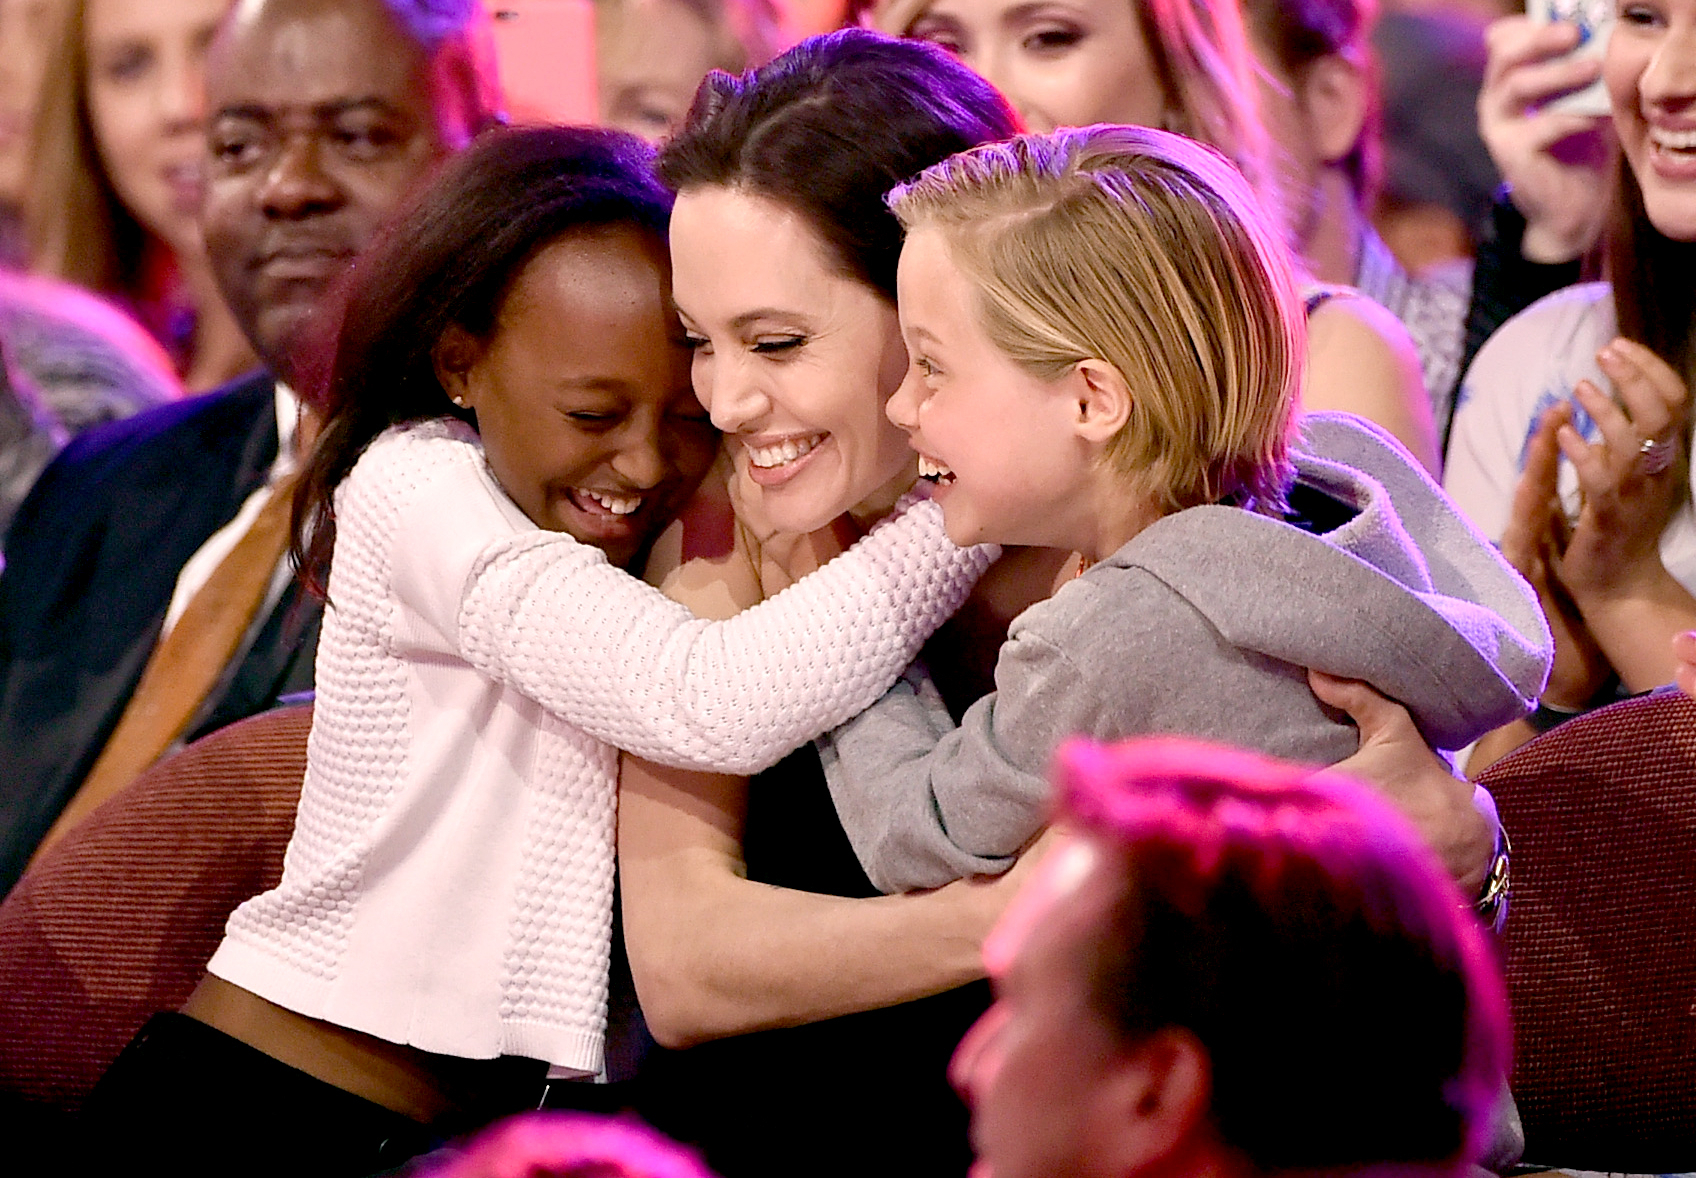 Angelina Jolie hugs Zahara Marley Jolie-Pitt (L) and Shiloh Nouvel Jolie-Pitt (R) after winning award for Favorite Villain in 'Maleficent' during Nickelodeon's 28th Annual Kids' Choice Awards held at The Forum on March 28, 2015 in Inglewood, California.